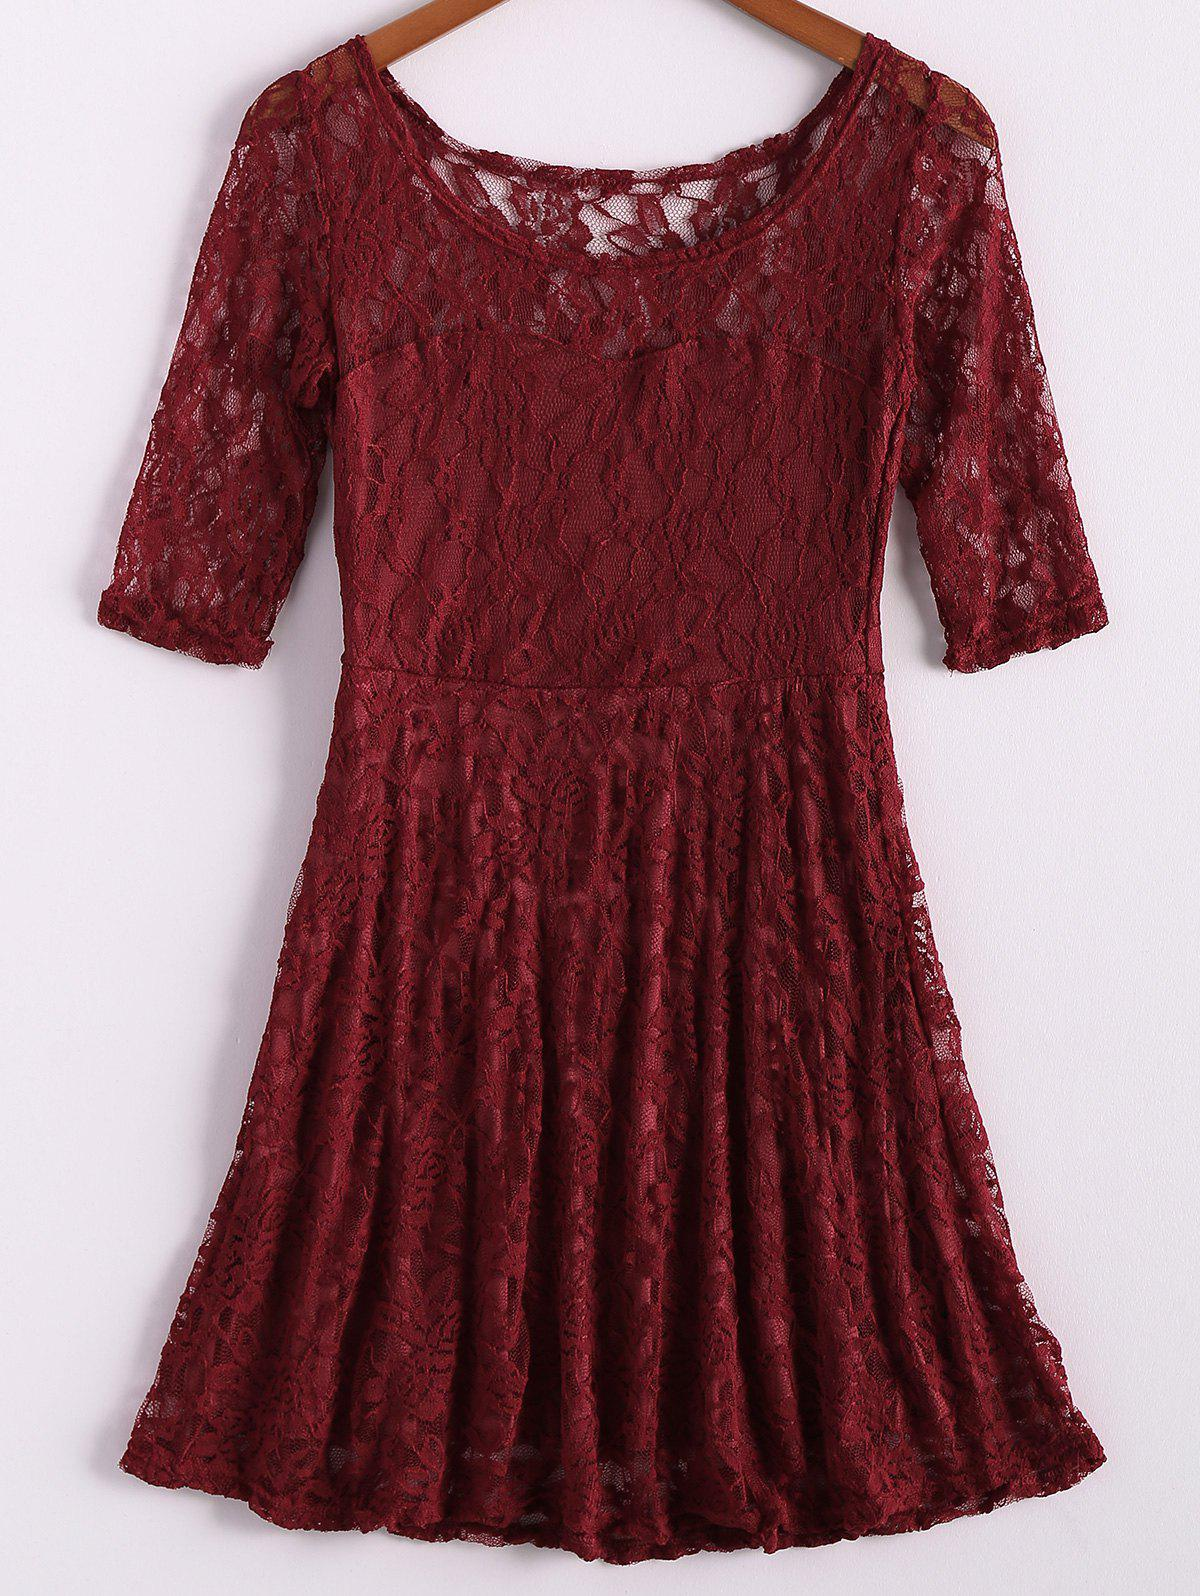 Charming Scoop Collar Solid Color Hollow Out Half Sleeve Pleated Women's Lace Dress - RED M